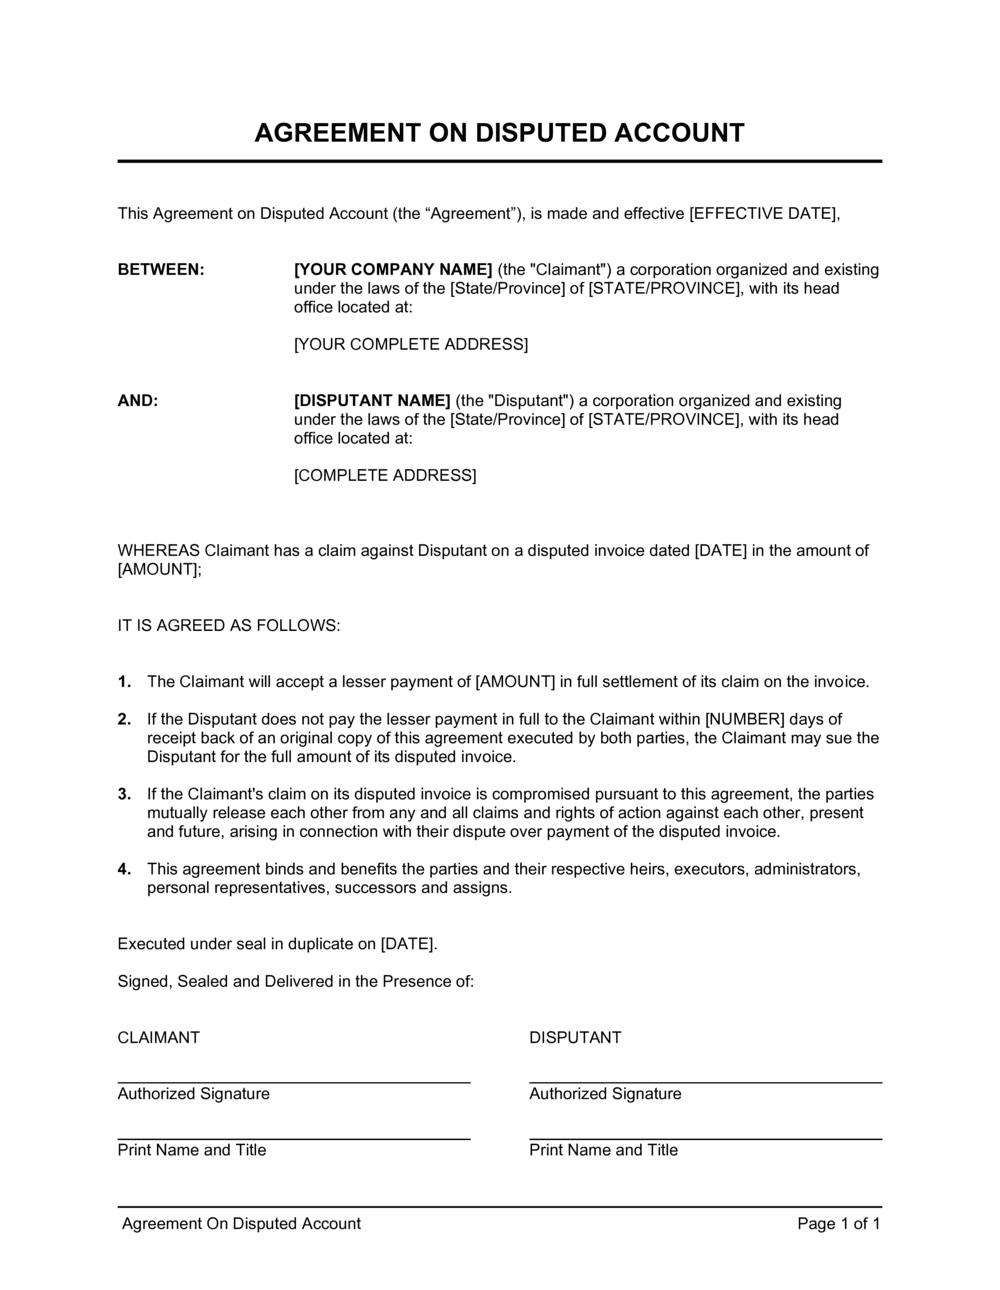 Business-in-a-Box's Agreement to Compromise Disputed Account Template